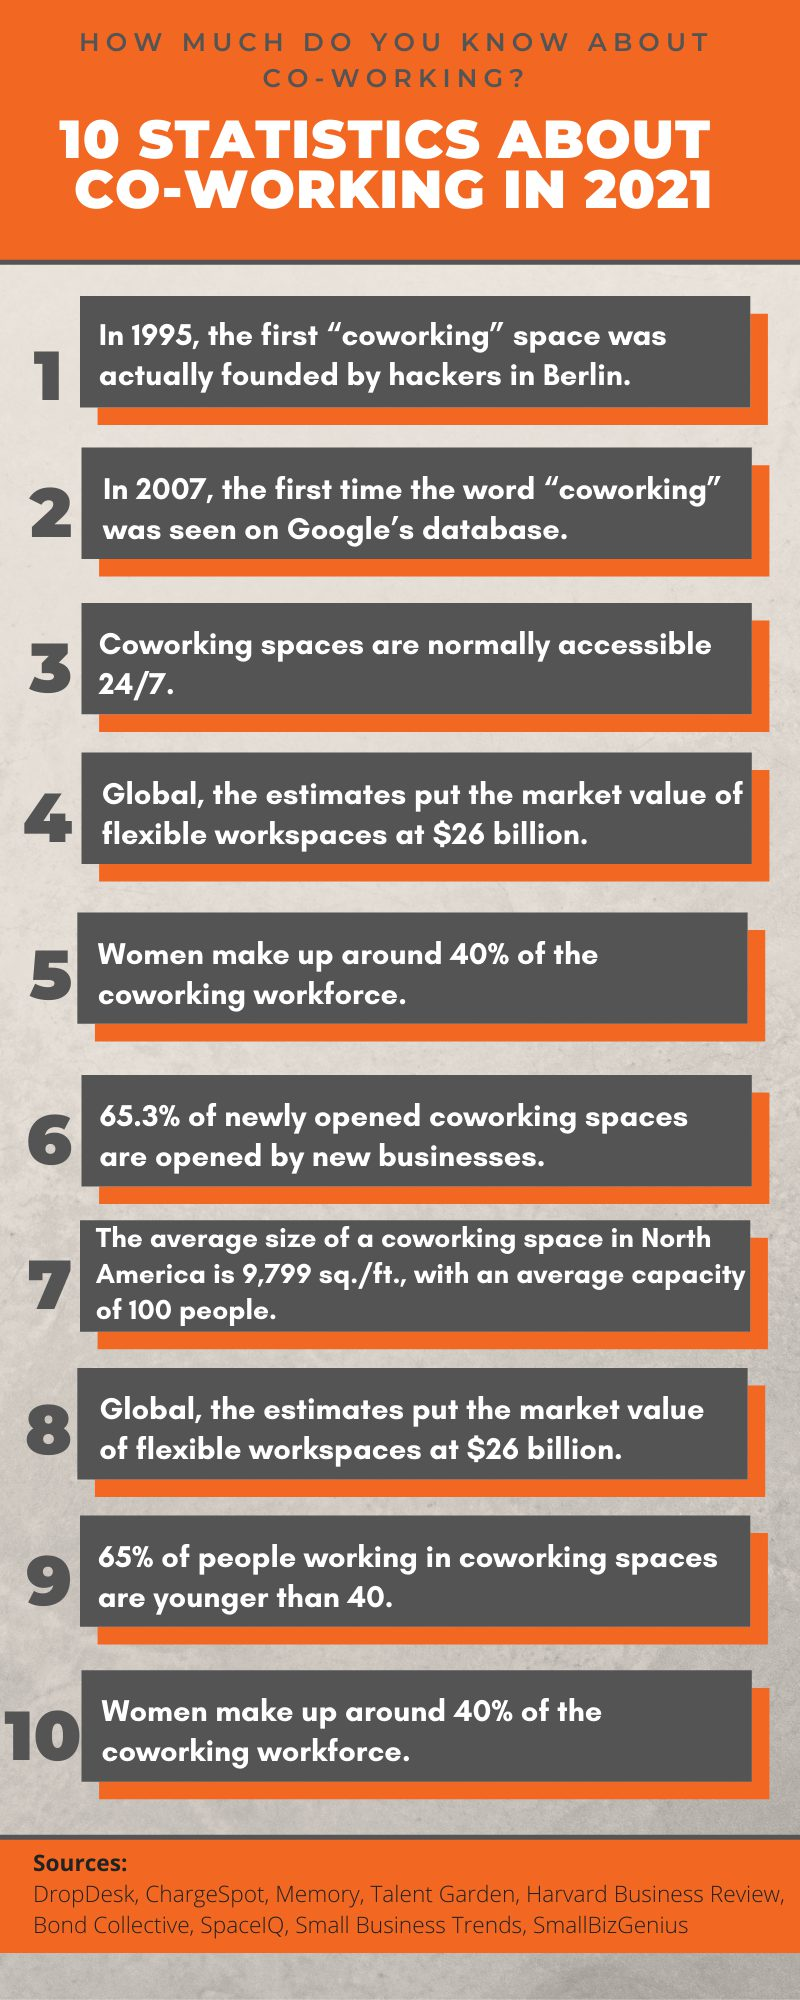 INFOGRAPHIC- How Much Do You Know About Co-Working 101 Statistics about Shared Workspaces in 2021